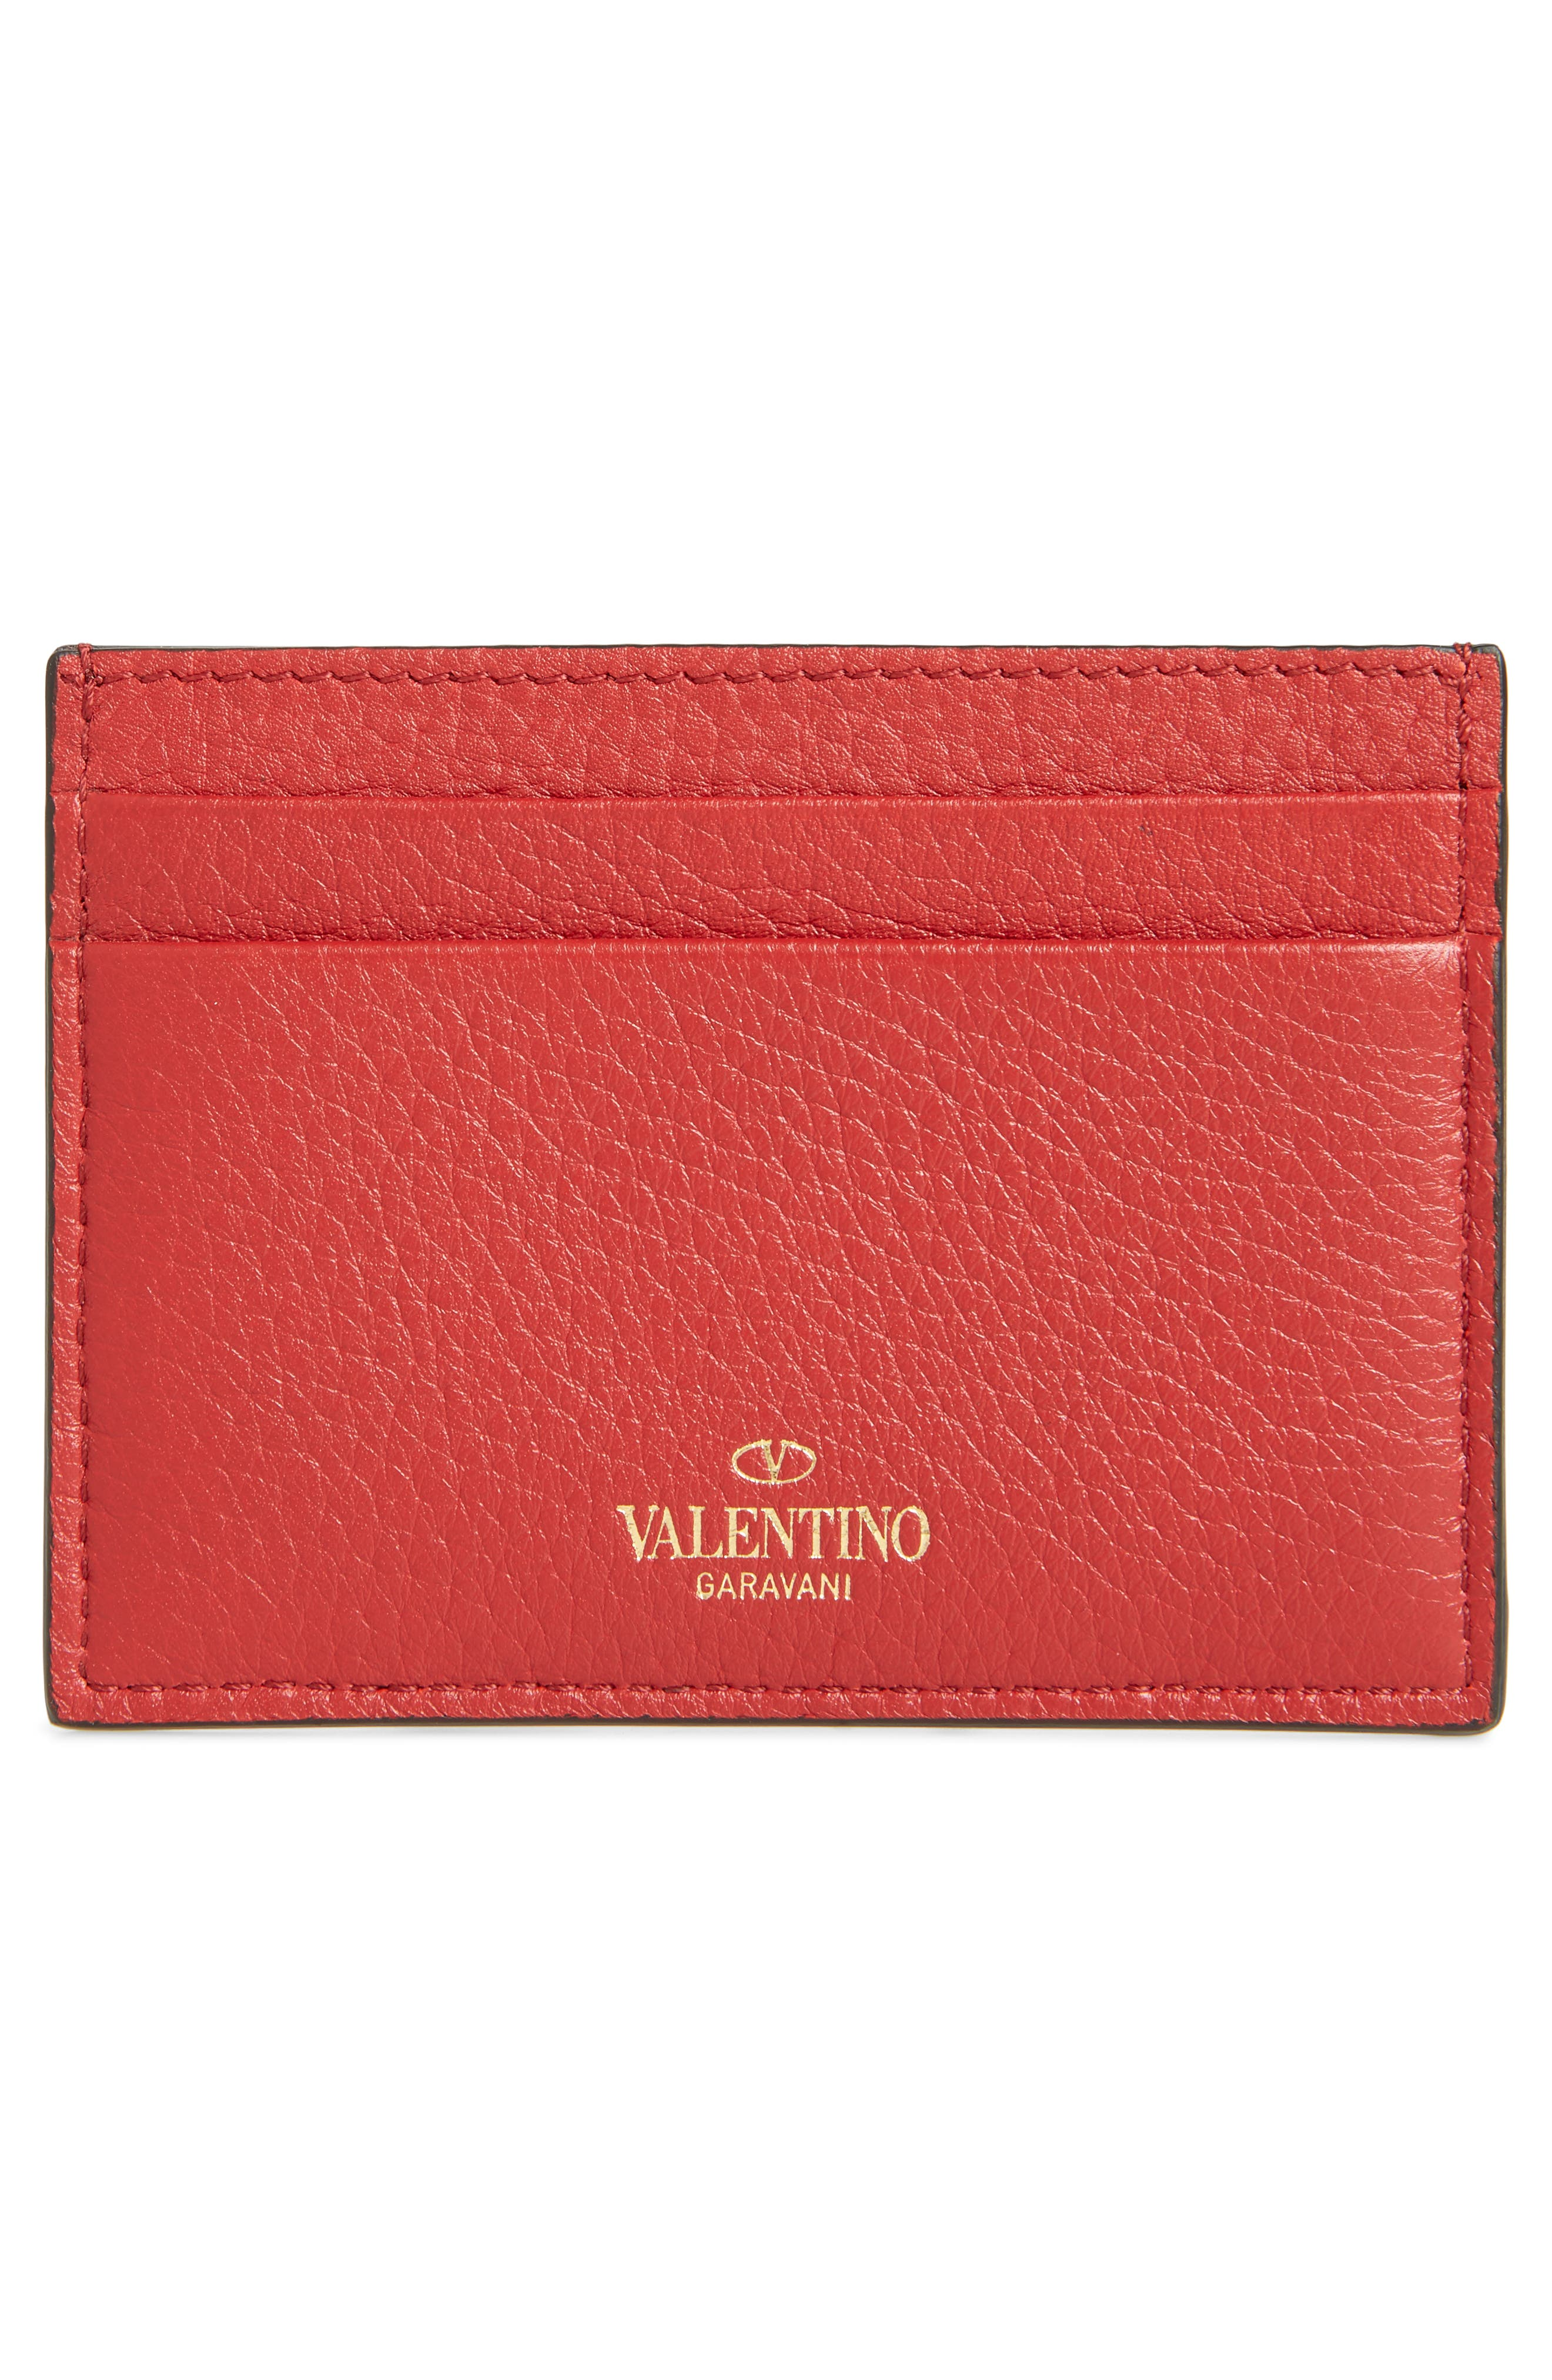 34e6acee8afb VALENTINO GARAVANI Wallets & Card Cases for Women | Nordstrom